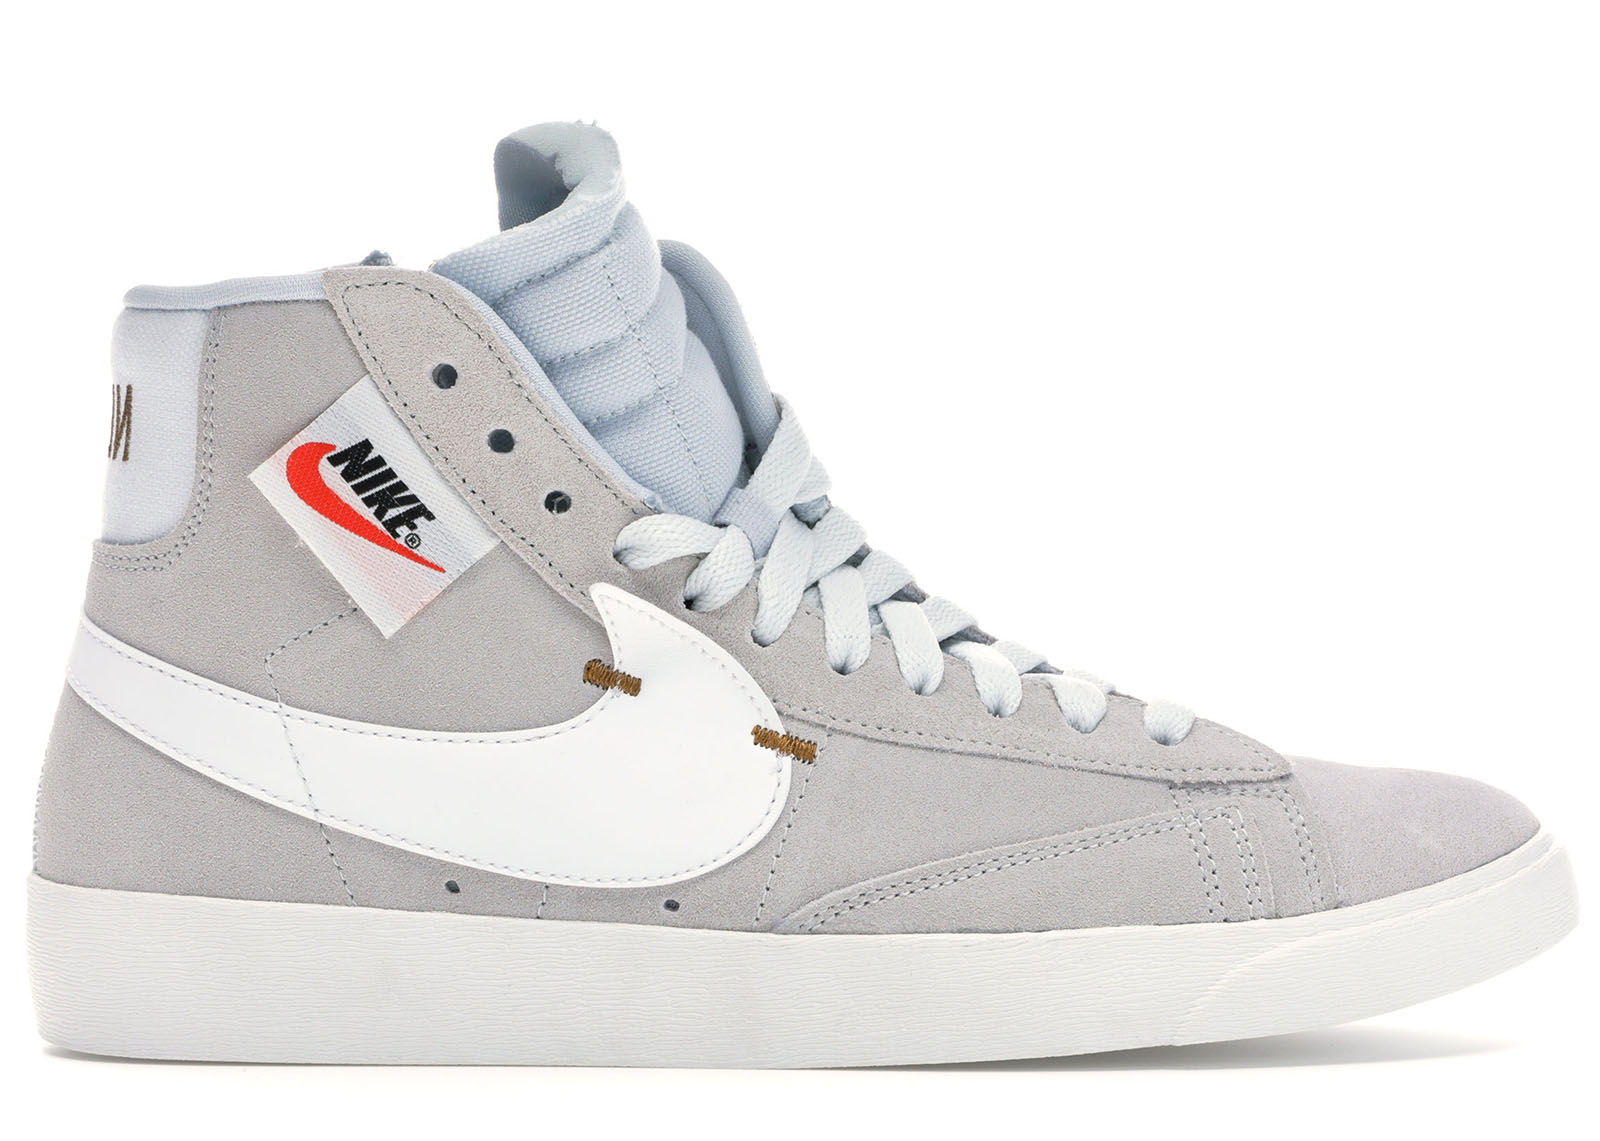 Nike Blazer Mid Rebel Off White (W) - BQ4022-101